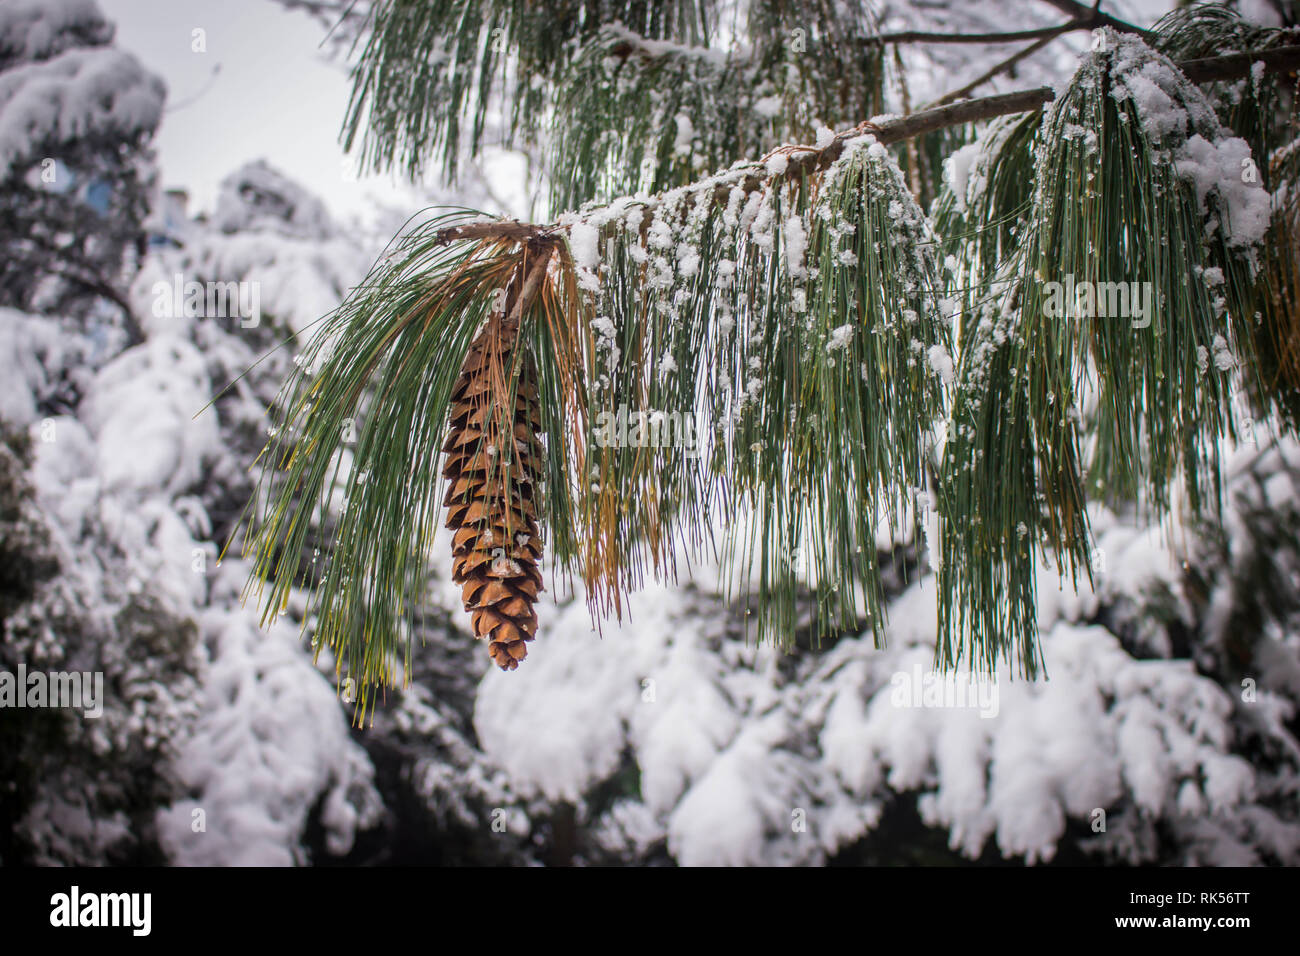 Mature brown cone of the Bhutan pine - latin name Pinus wallichiana covered with snow in the garden in Belgrade in Serbia Stock Photo